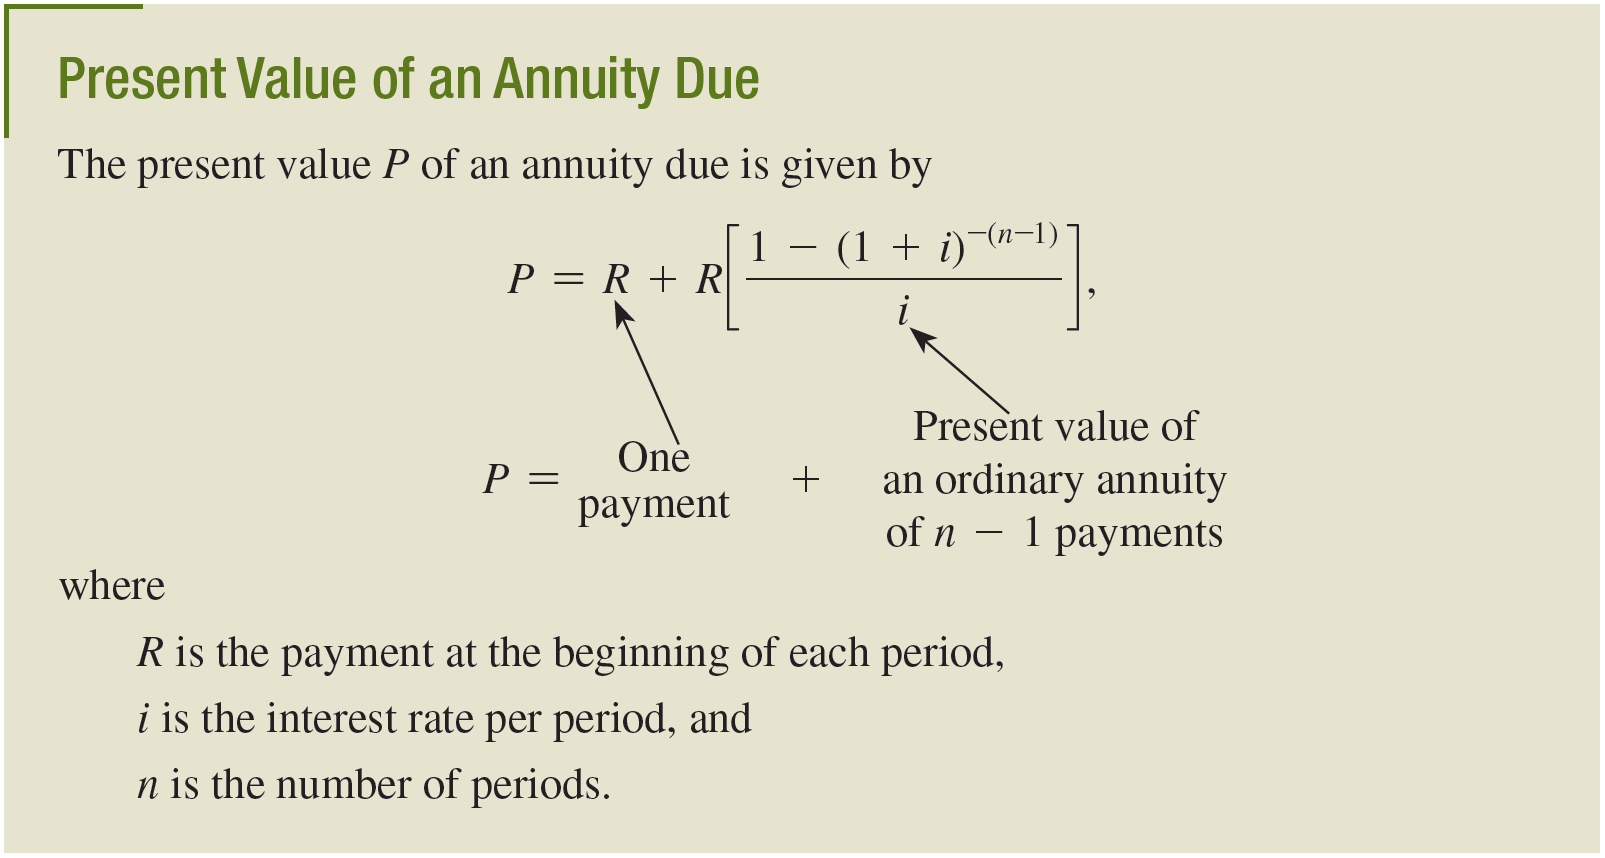 Annutes Due We want to fnd the present value of an annuty due n whch 6 payments of R dollars are made at the begnnng of each perod, wth nterest rate per perod, as shown schematcally n the Fgure on